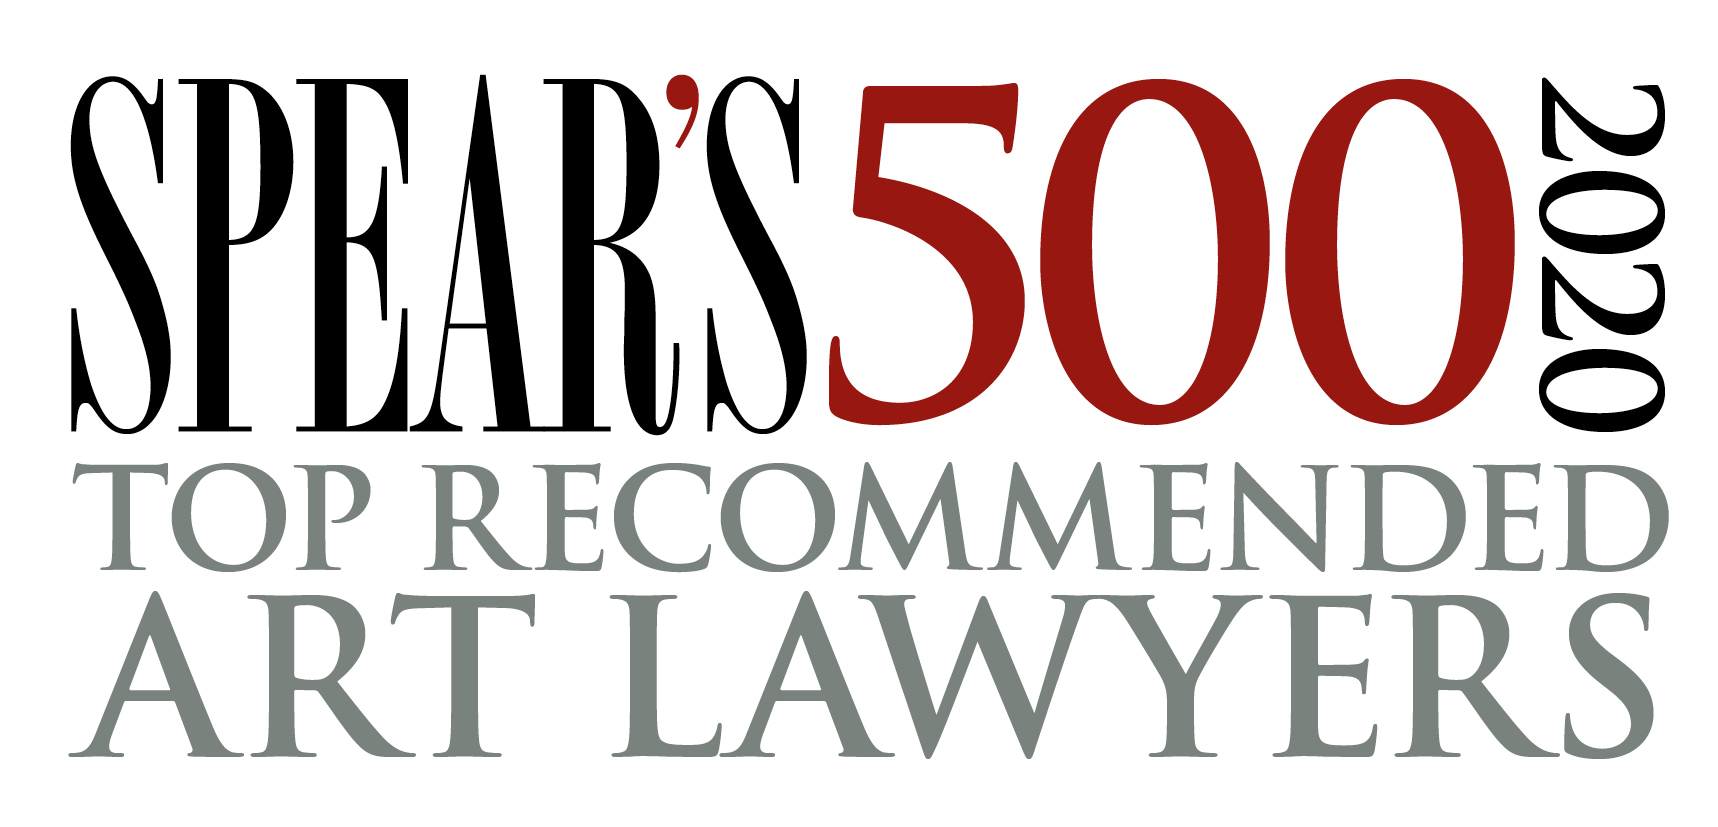 Spear's 500 2020 Top recommended art lawyers